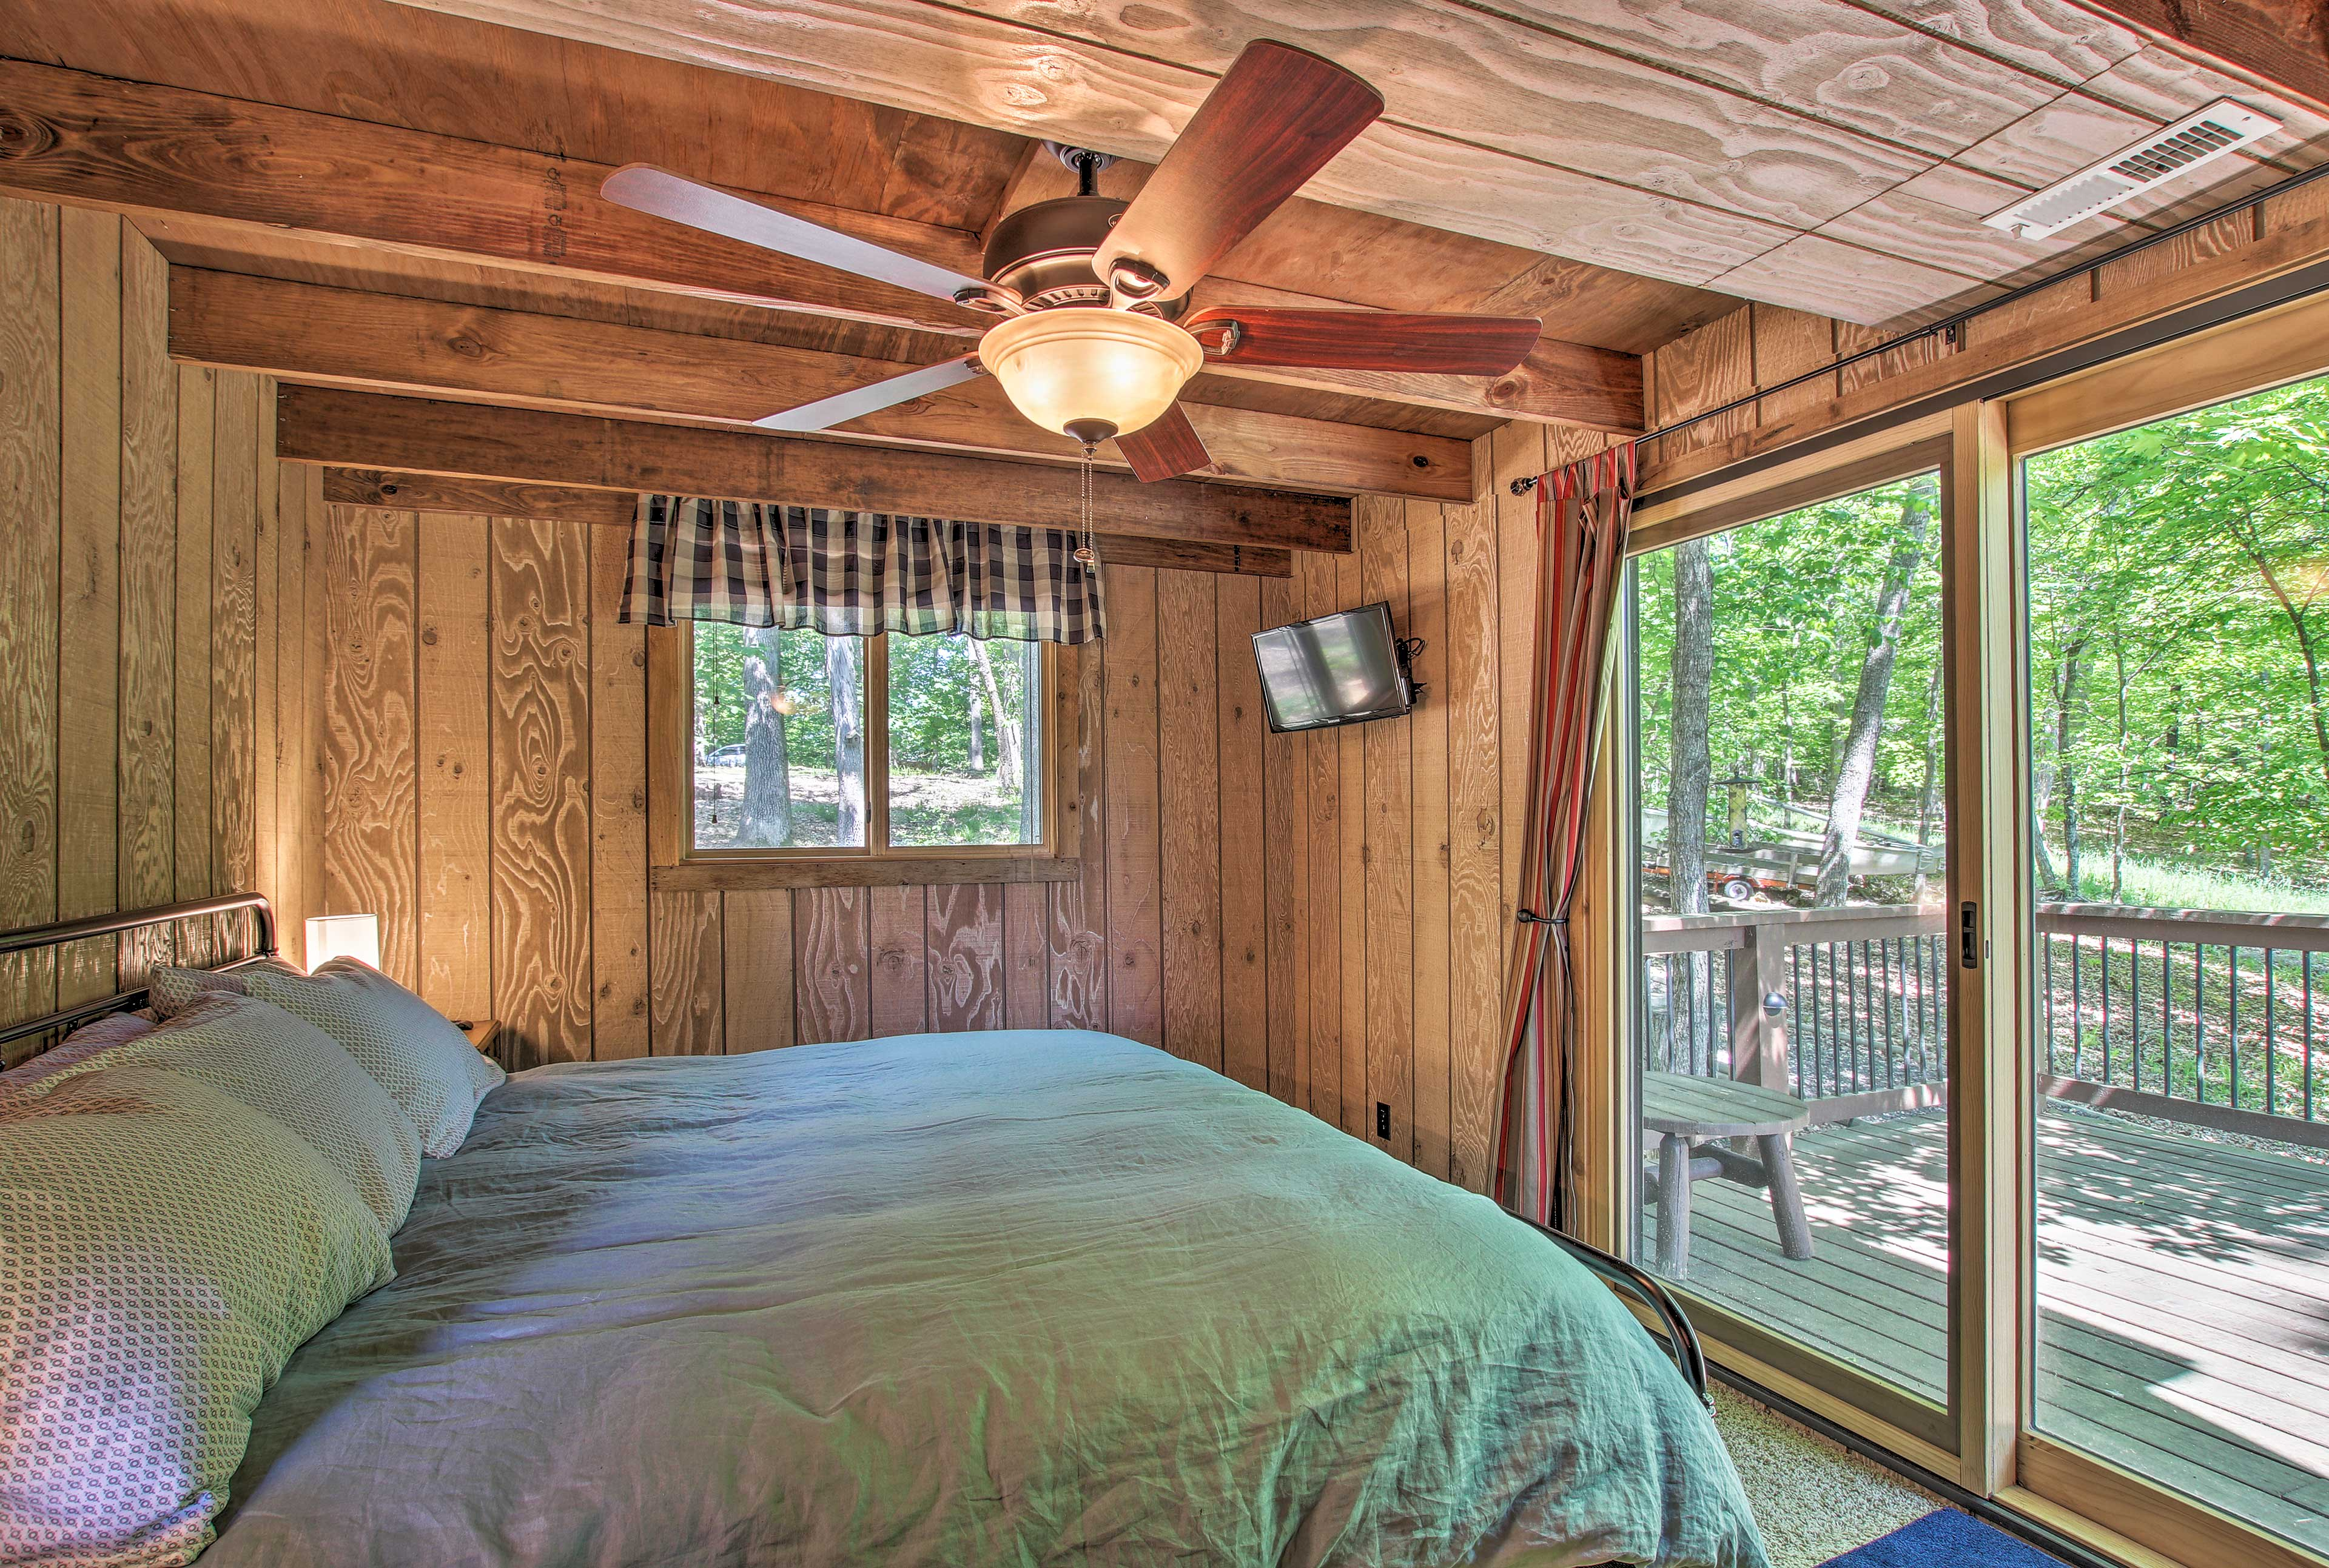 The bedroom now features a king-sized bed that easily accommodates 2 guests.